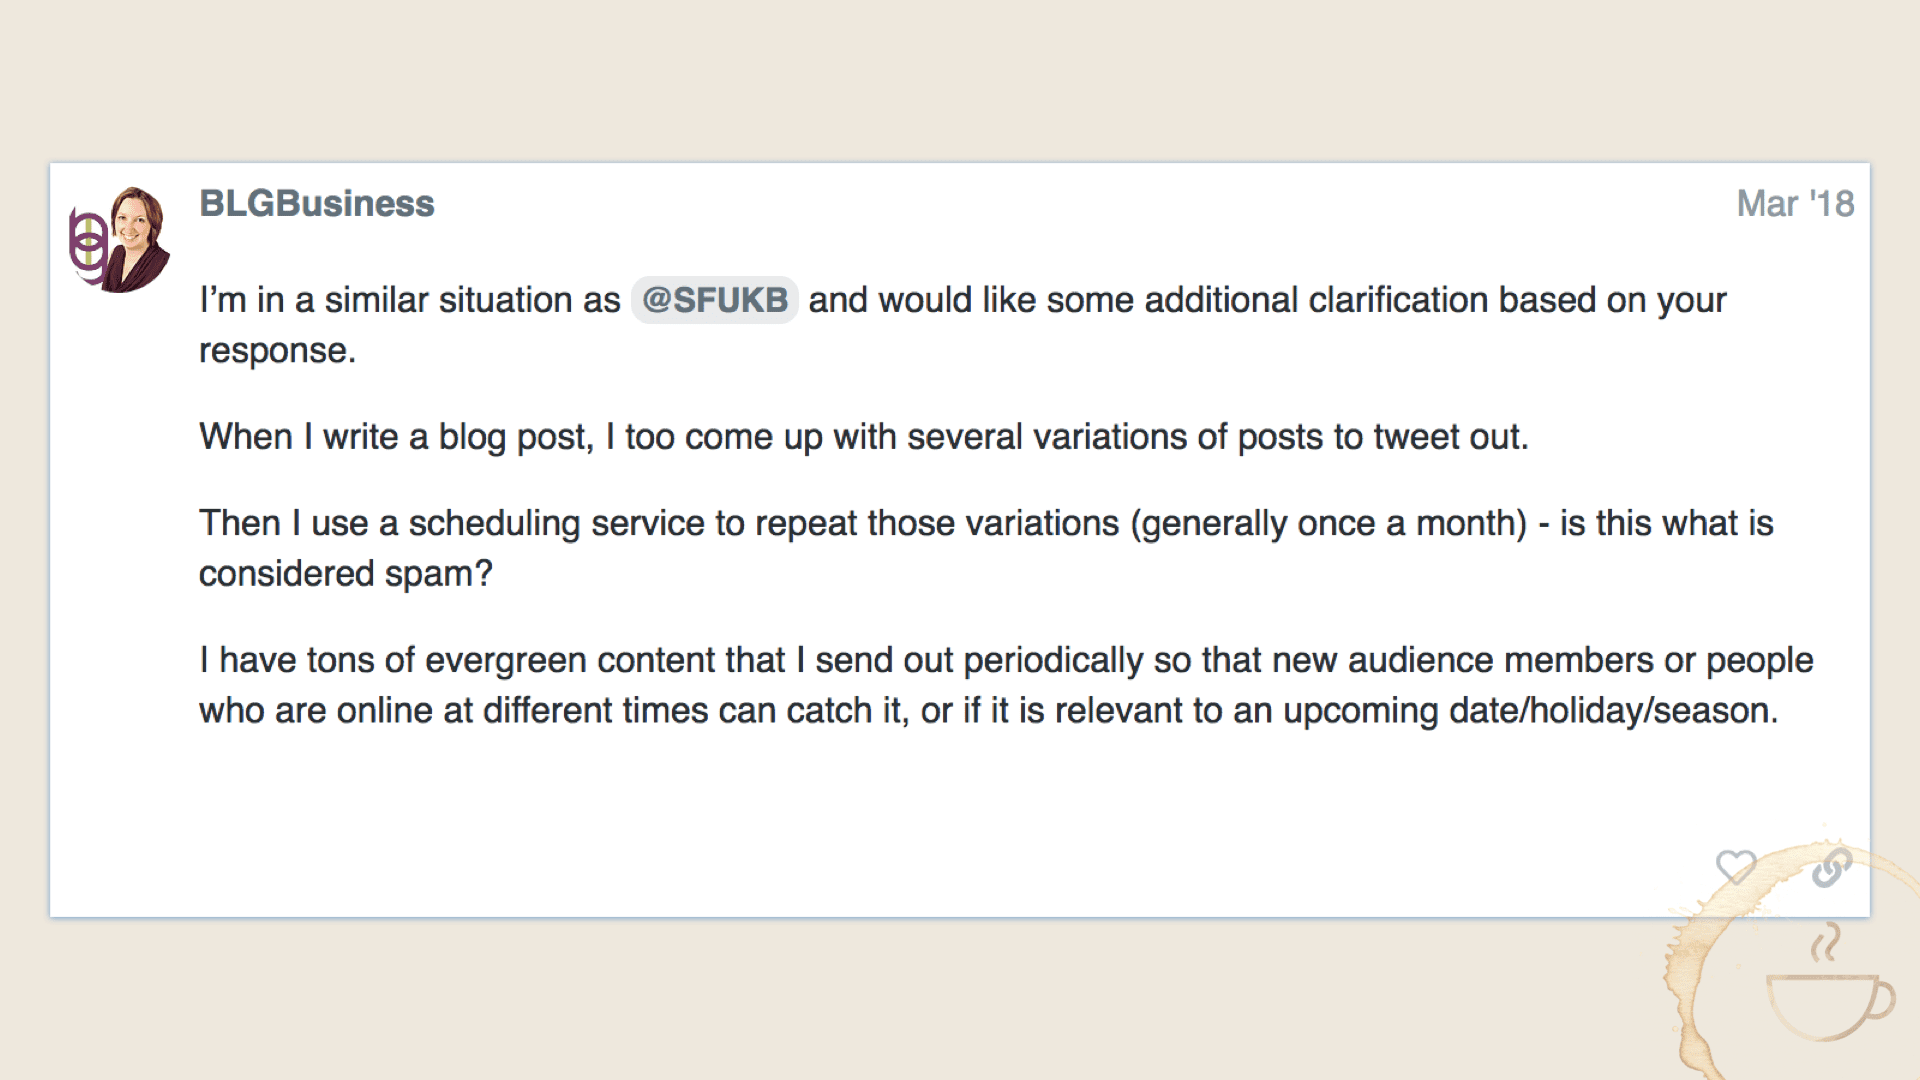 Precision on Tweeting links to my new blog posts will they suspend my Twitter account, please?